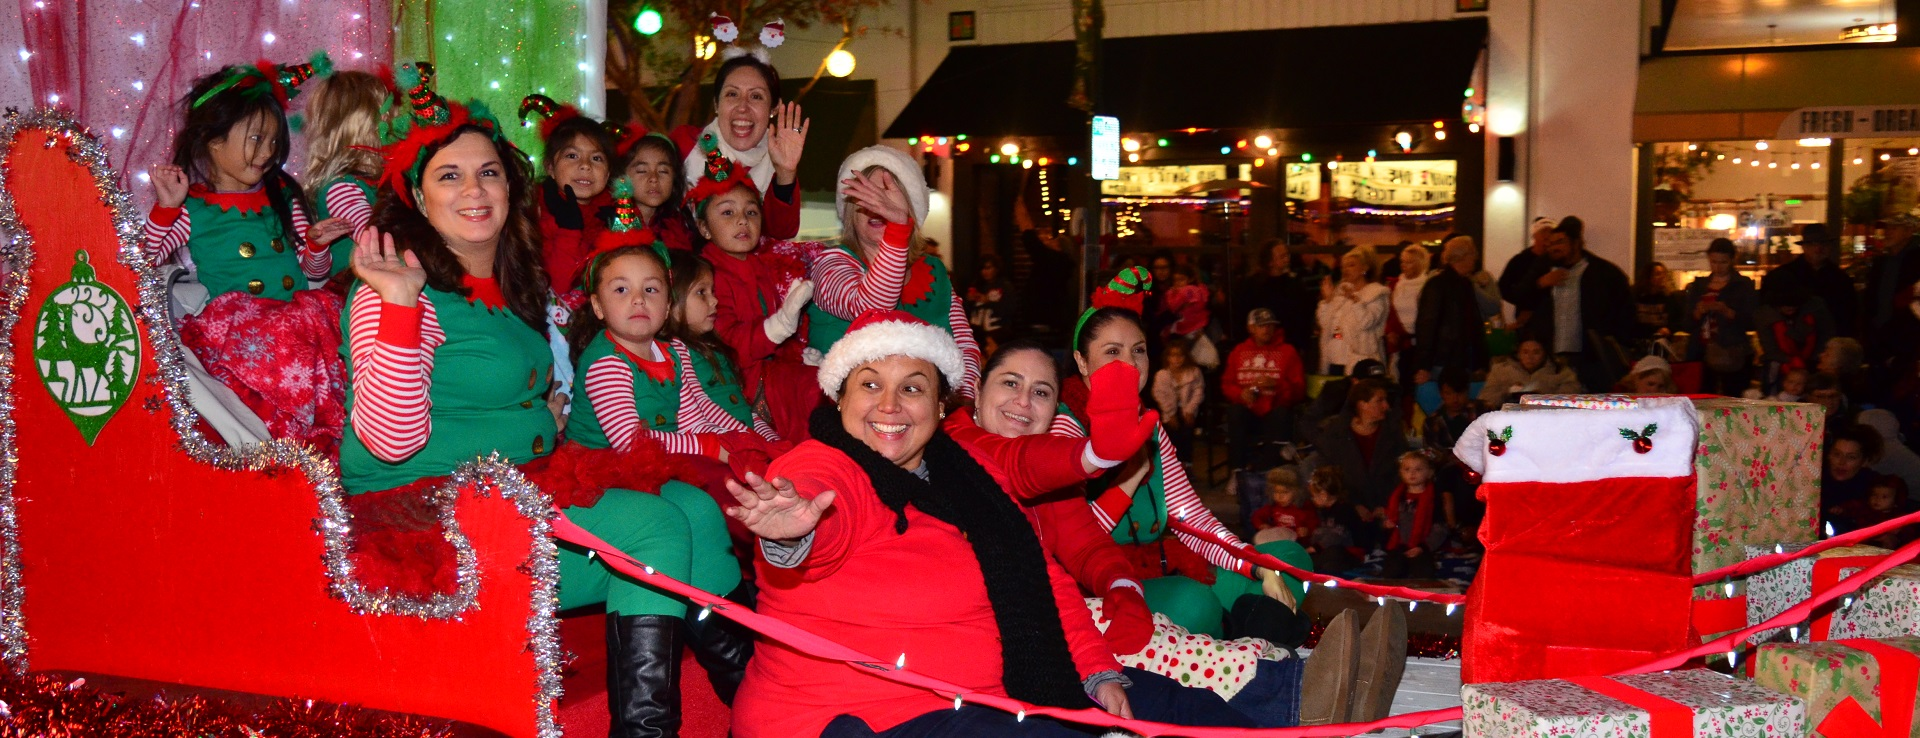 Holiday Parade in Old Town Monrovia